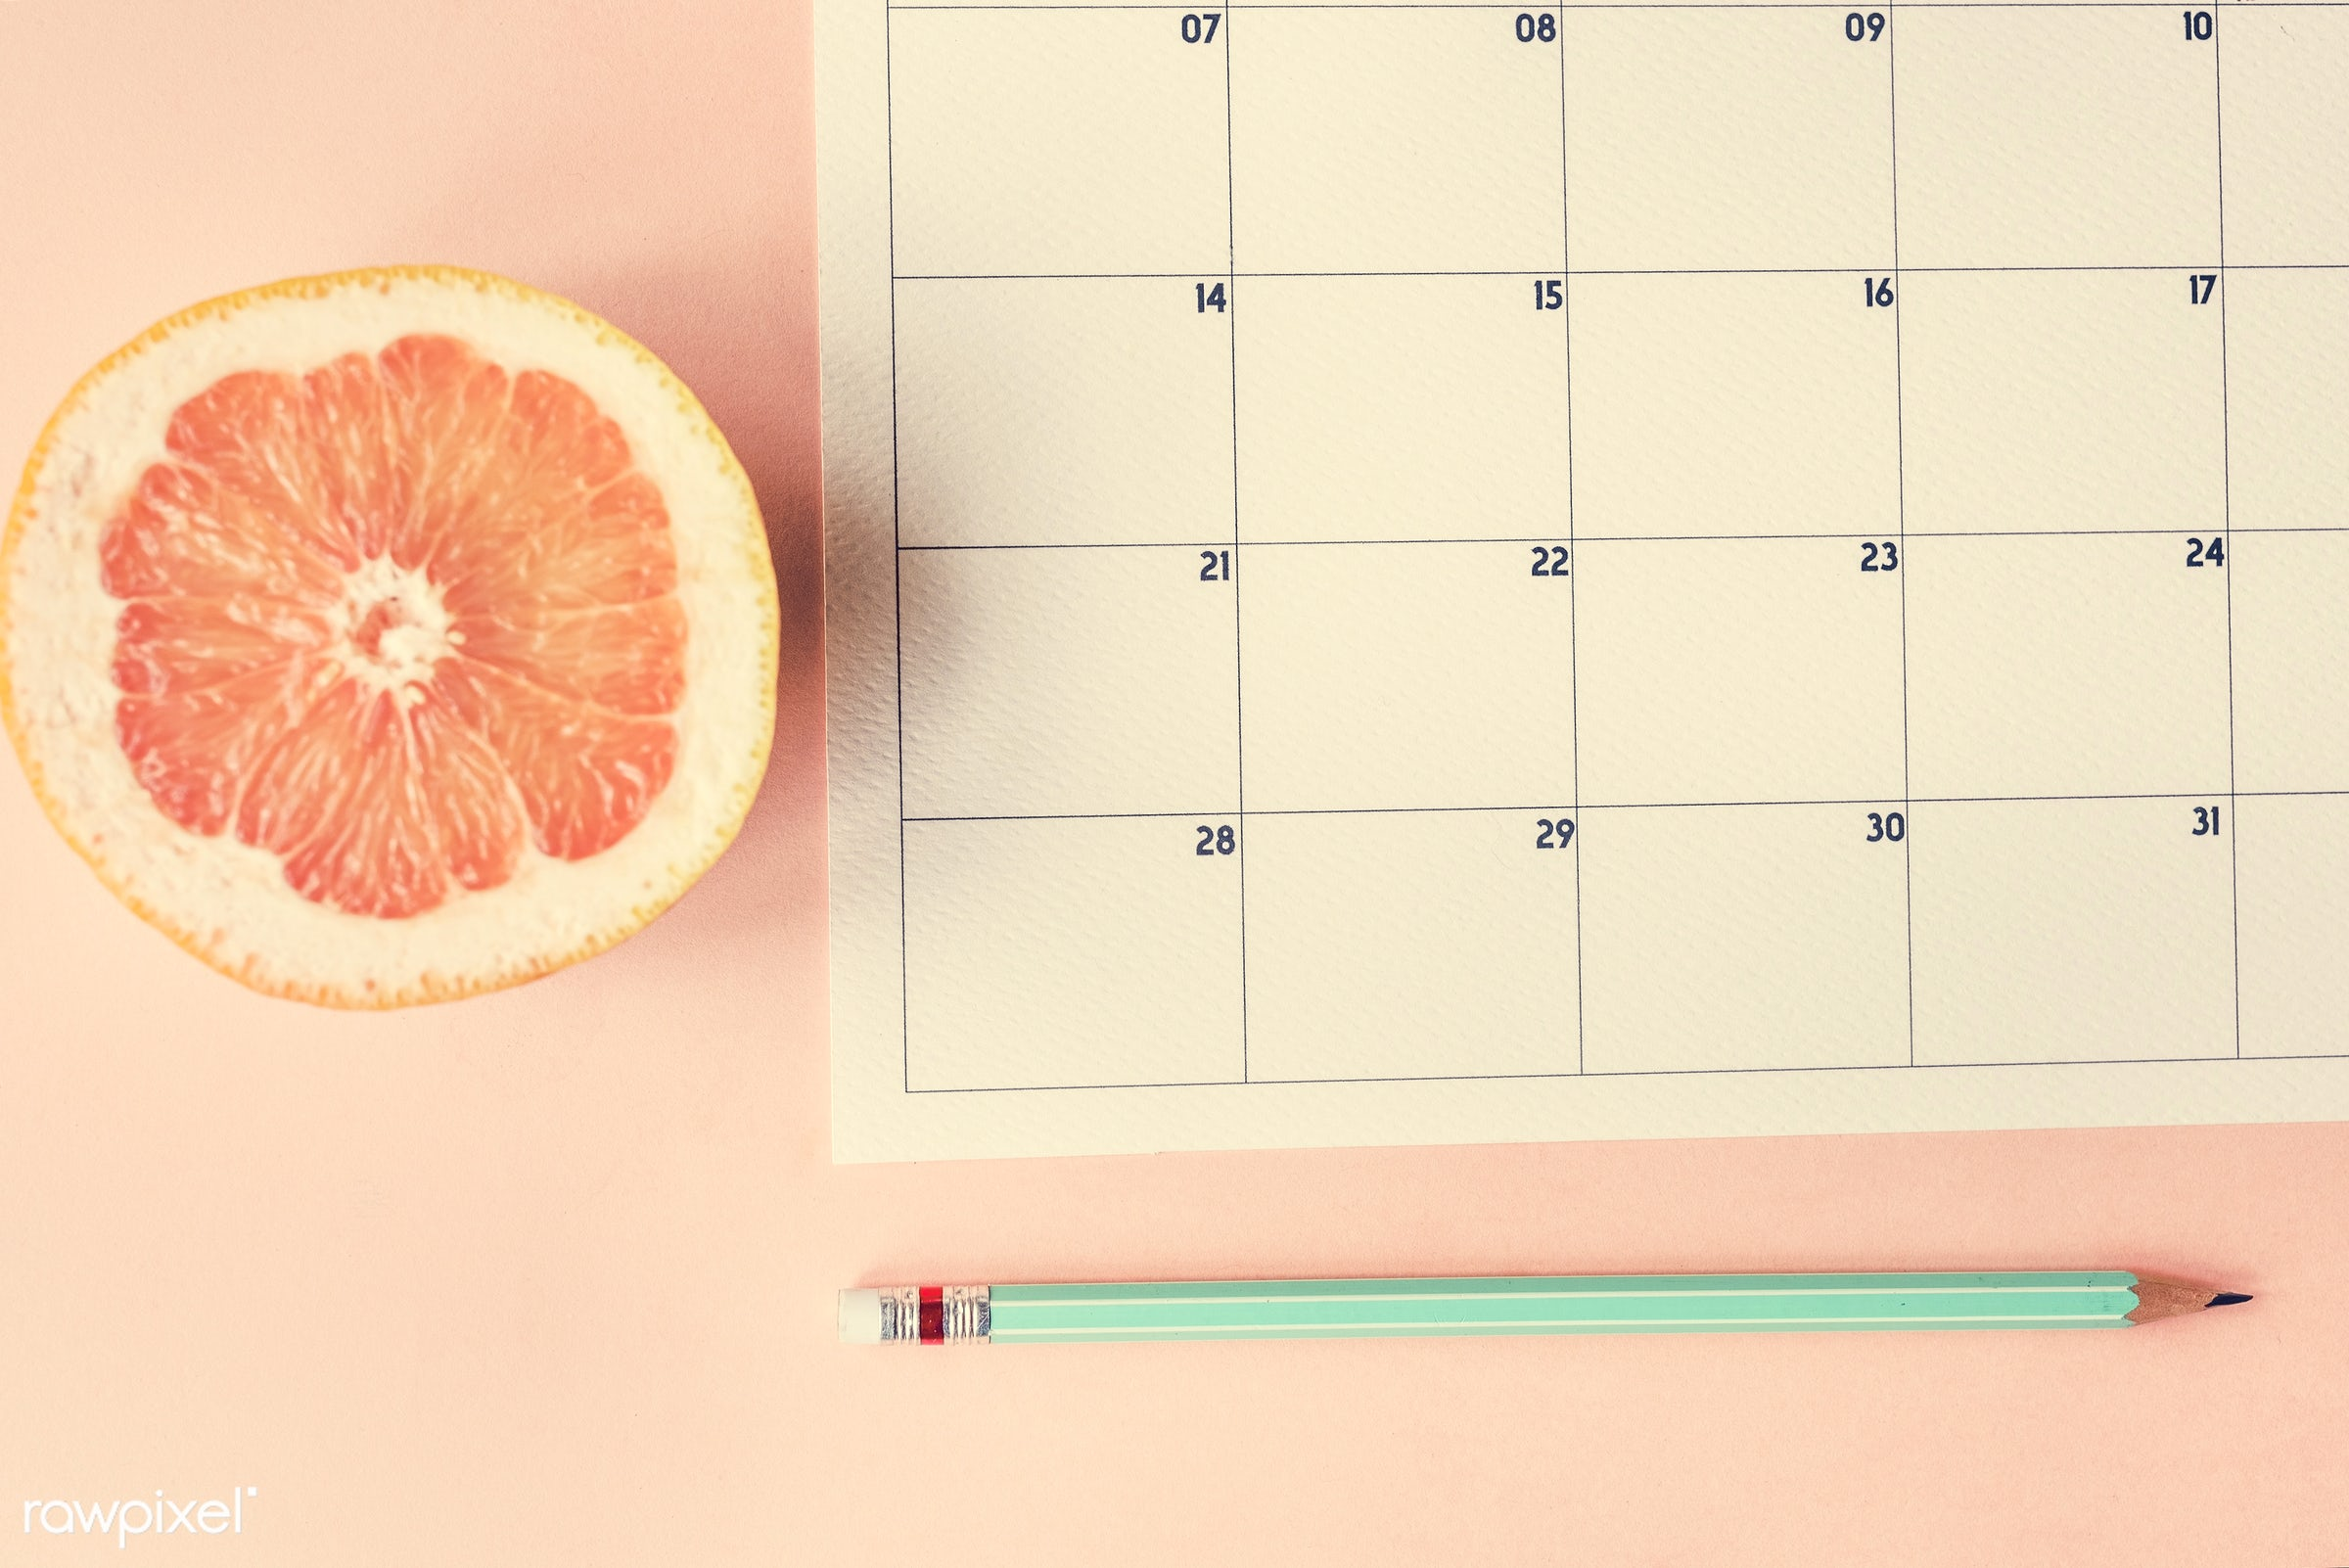 nobody, reminder, memo, data, organize, date, space, event, to do list, note, calendar, agenda, orange, information, fruit,...